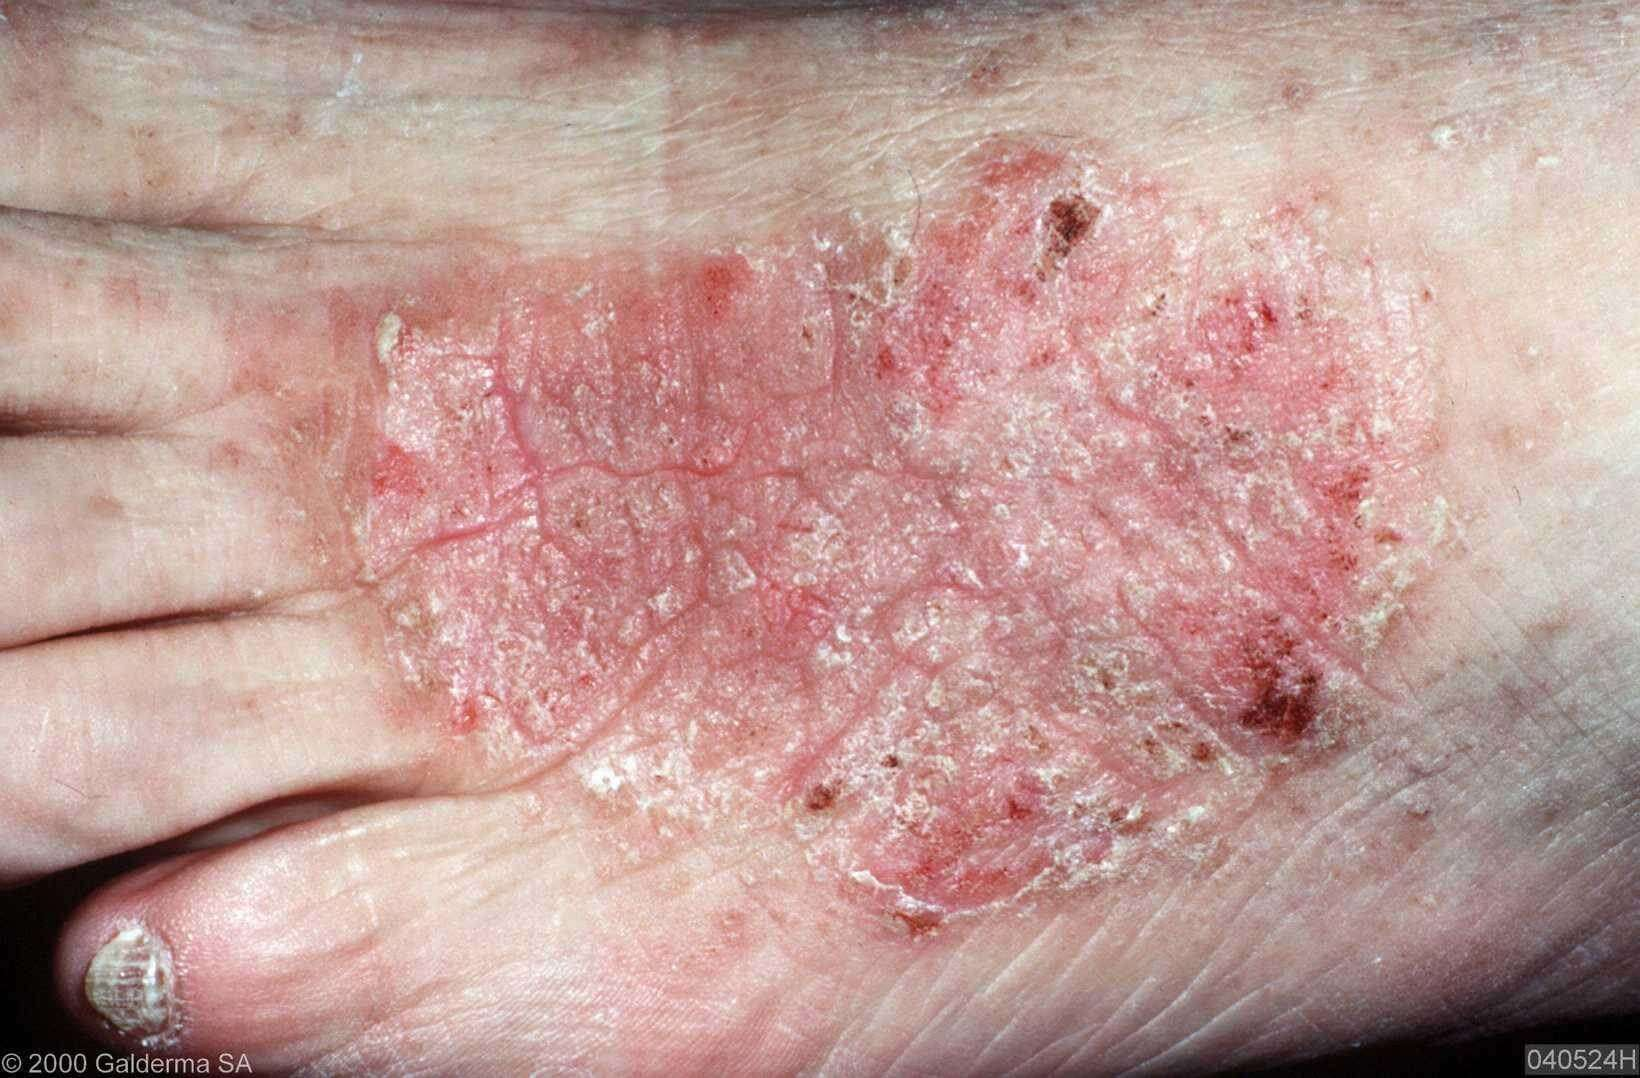 Lichen Simplex Chronicus Treatment … – Medscape Reference